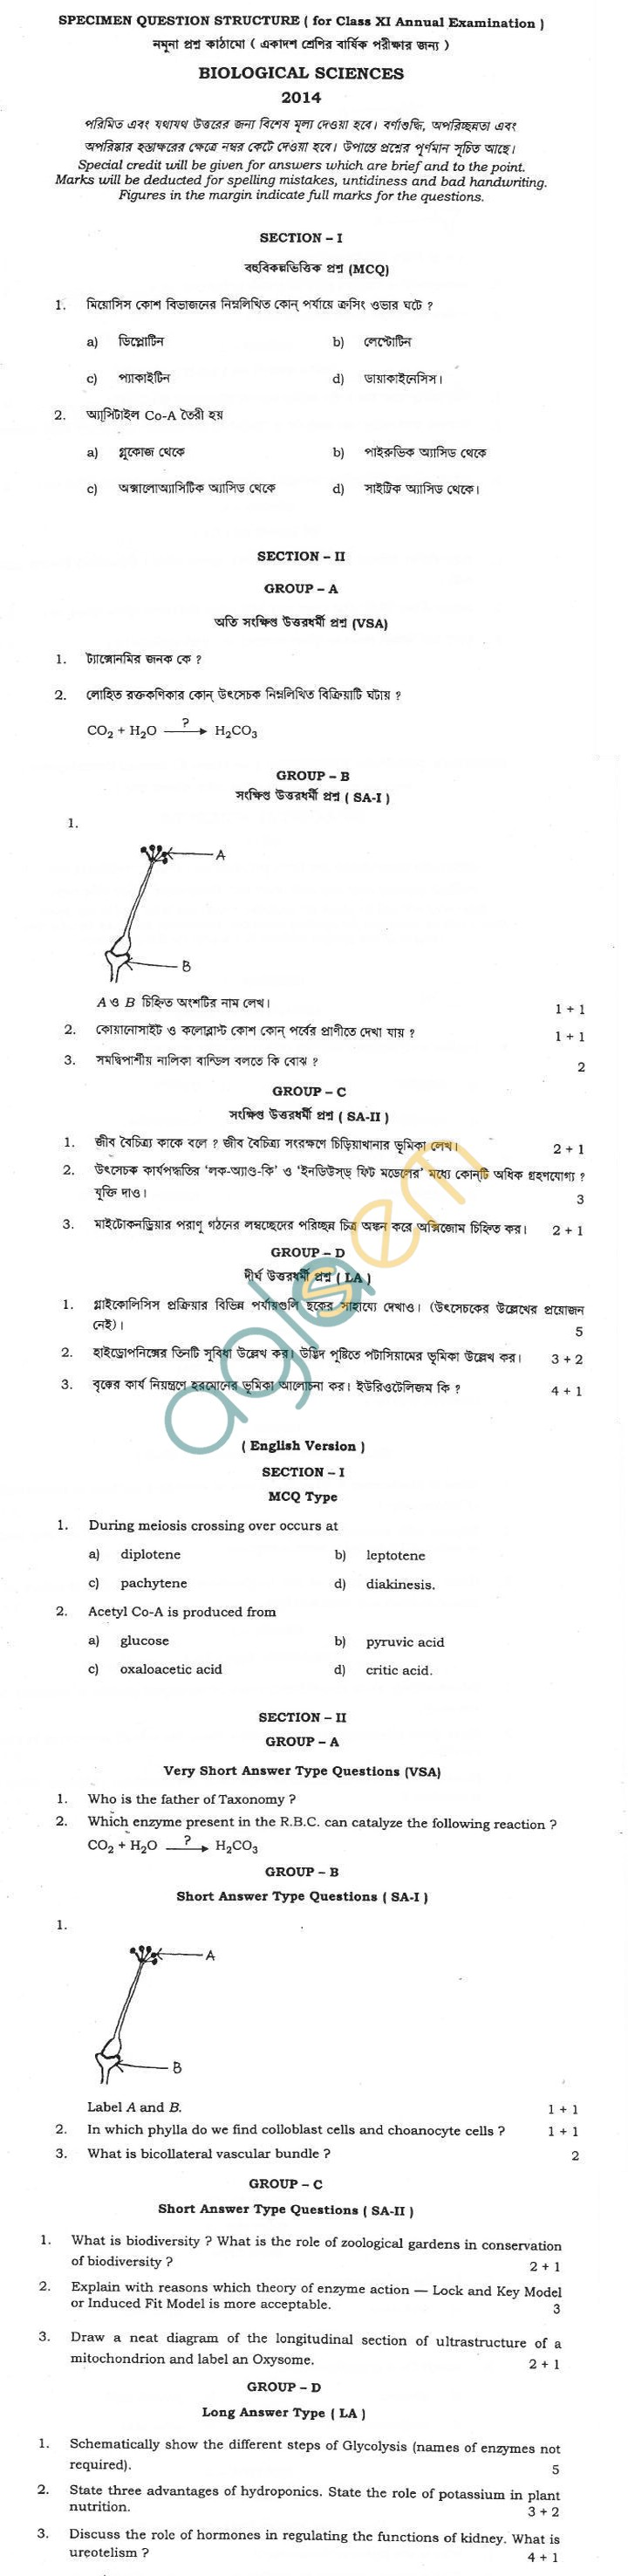 West Bengal Board Sample Question Paper for Class 11 - Biological Sciences